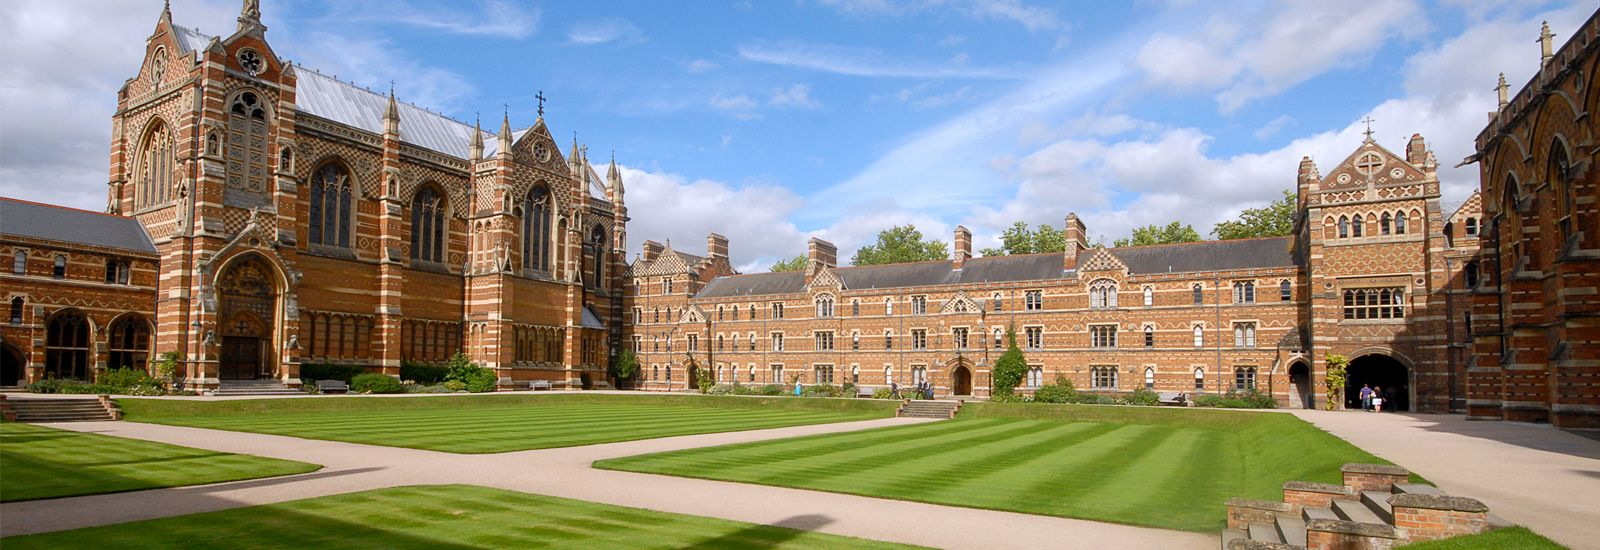 A quad at Keble College with the chapel on the left